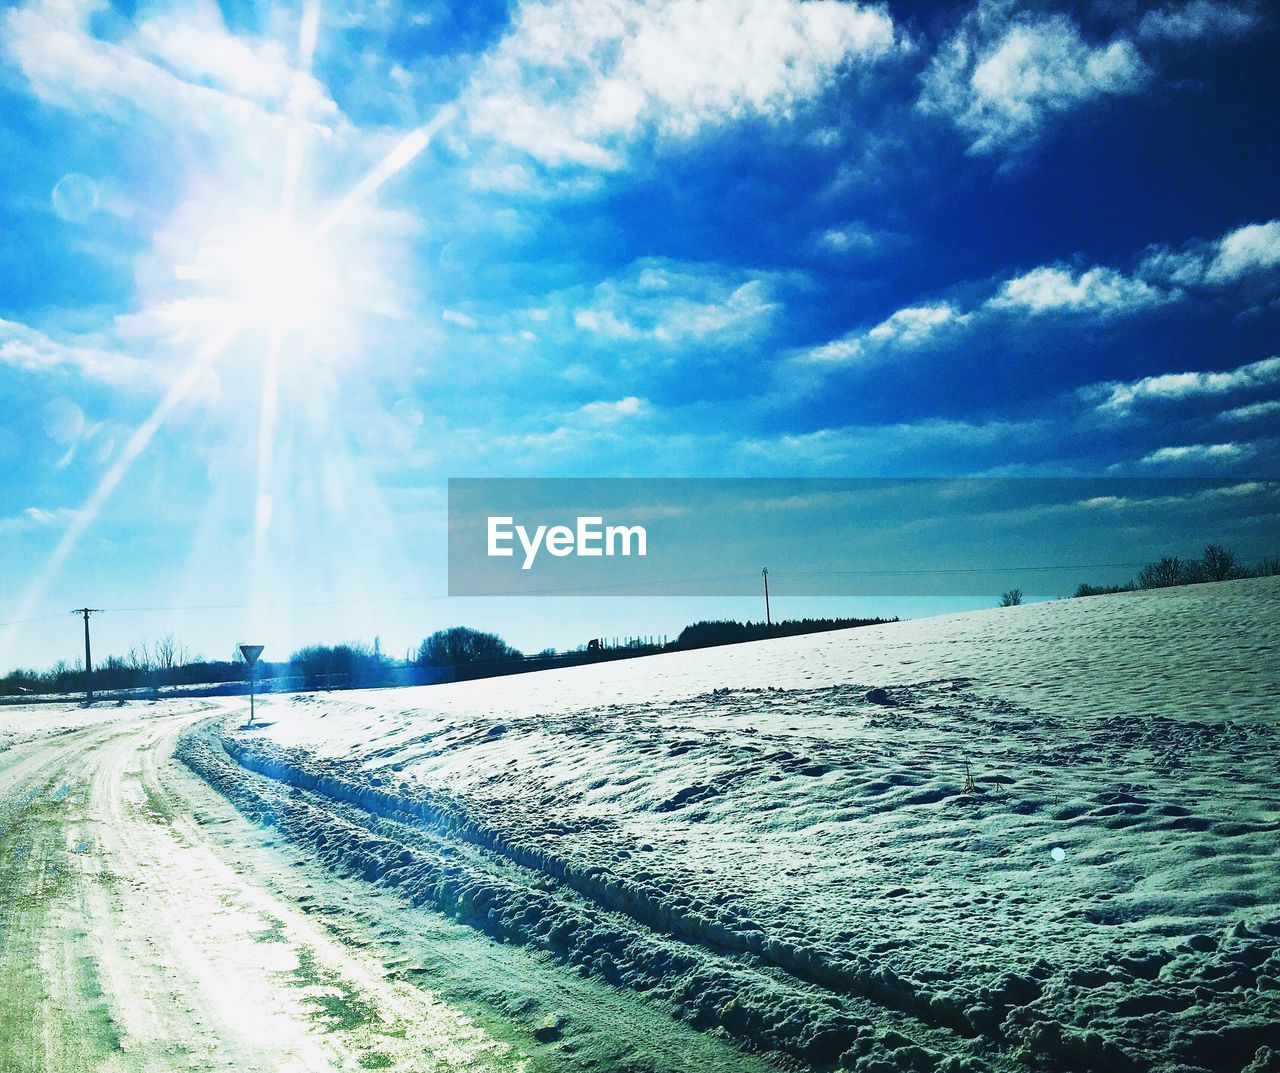 sunbeam, lens flare, sun, sunlight, outdoors, sky, day, no people, nature, tranquility, road, scenics, landscape, tranquil scene, the way forward, beauty in nature, cold temperature, winter, snow, water